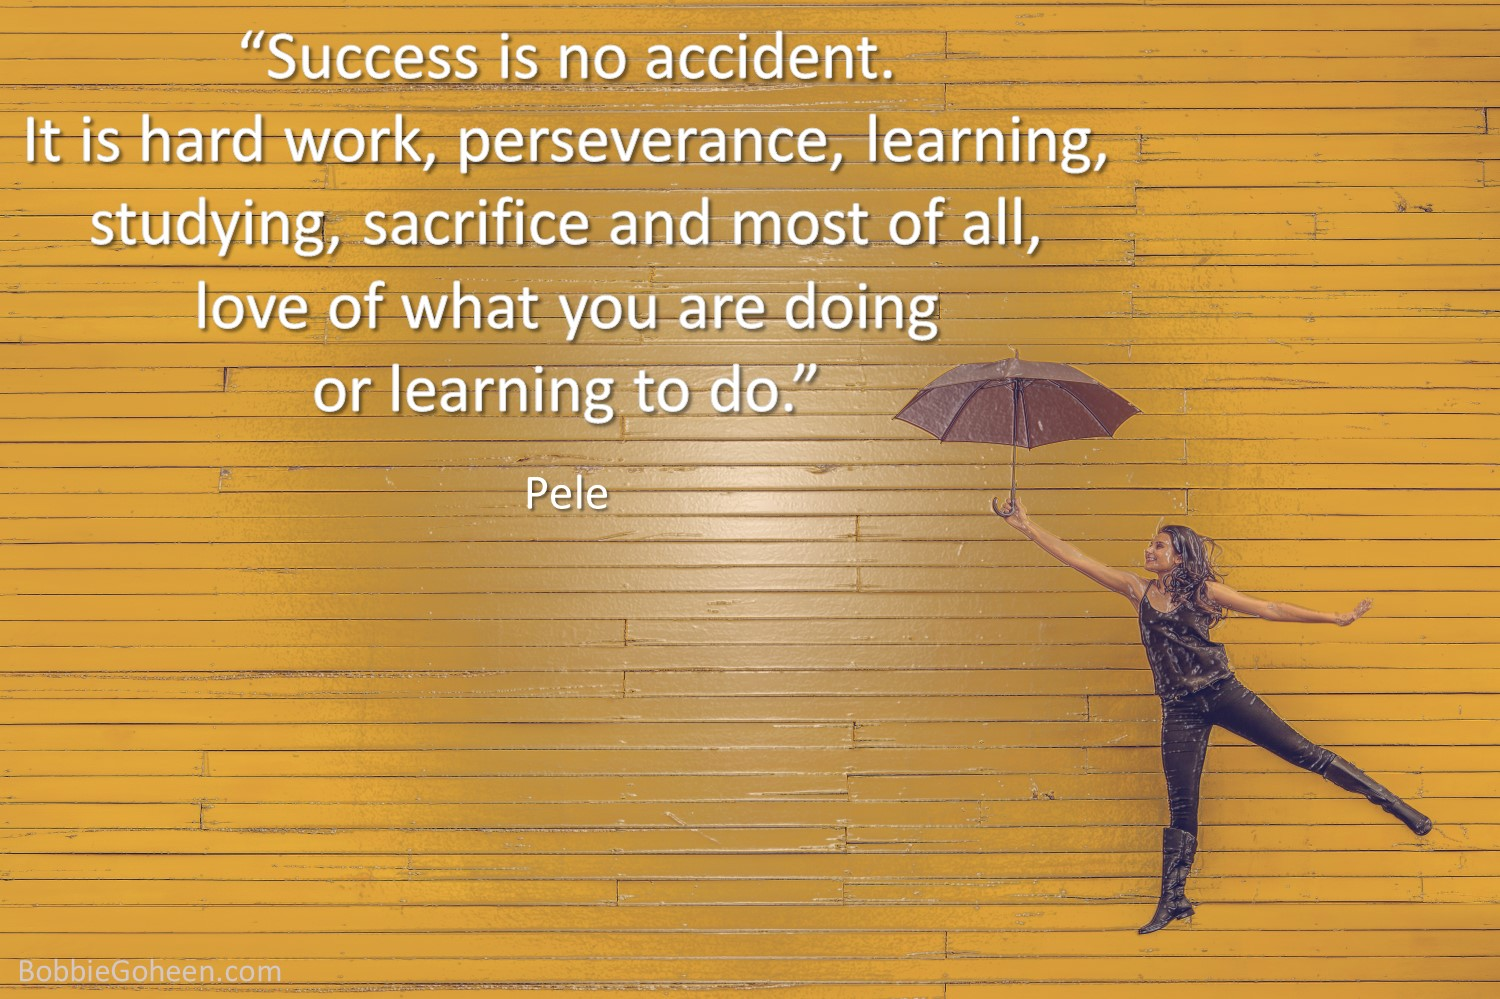 leadership quote from bobbie goheen success is no accident by pele